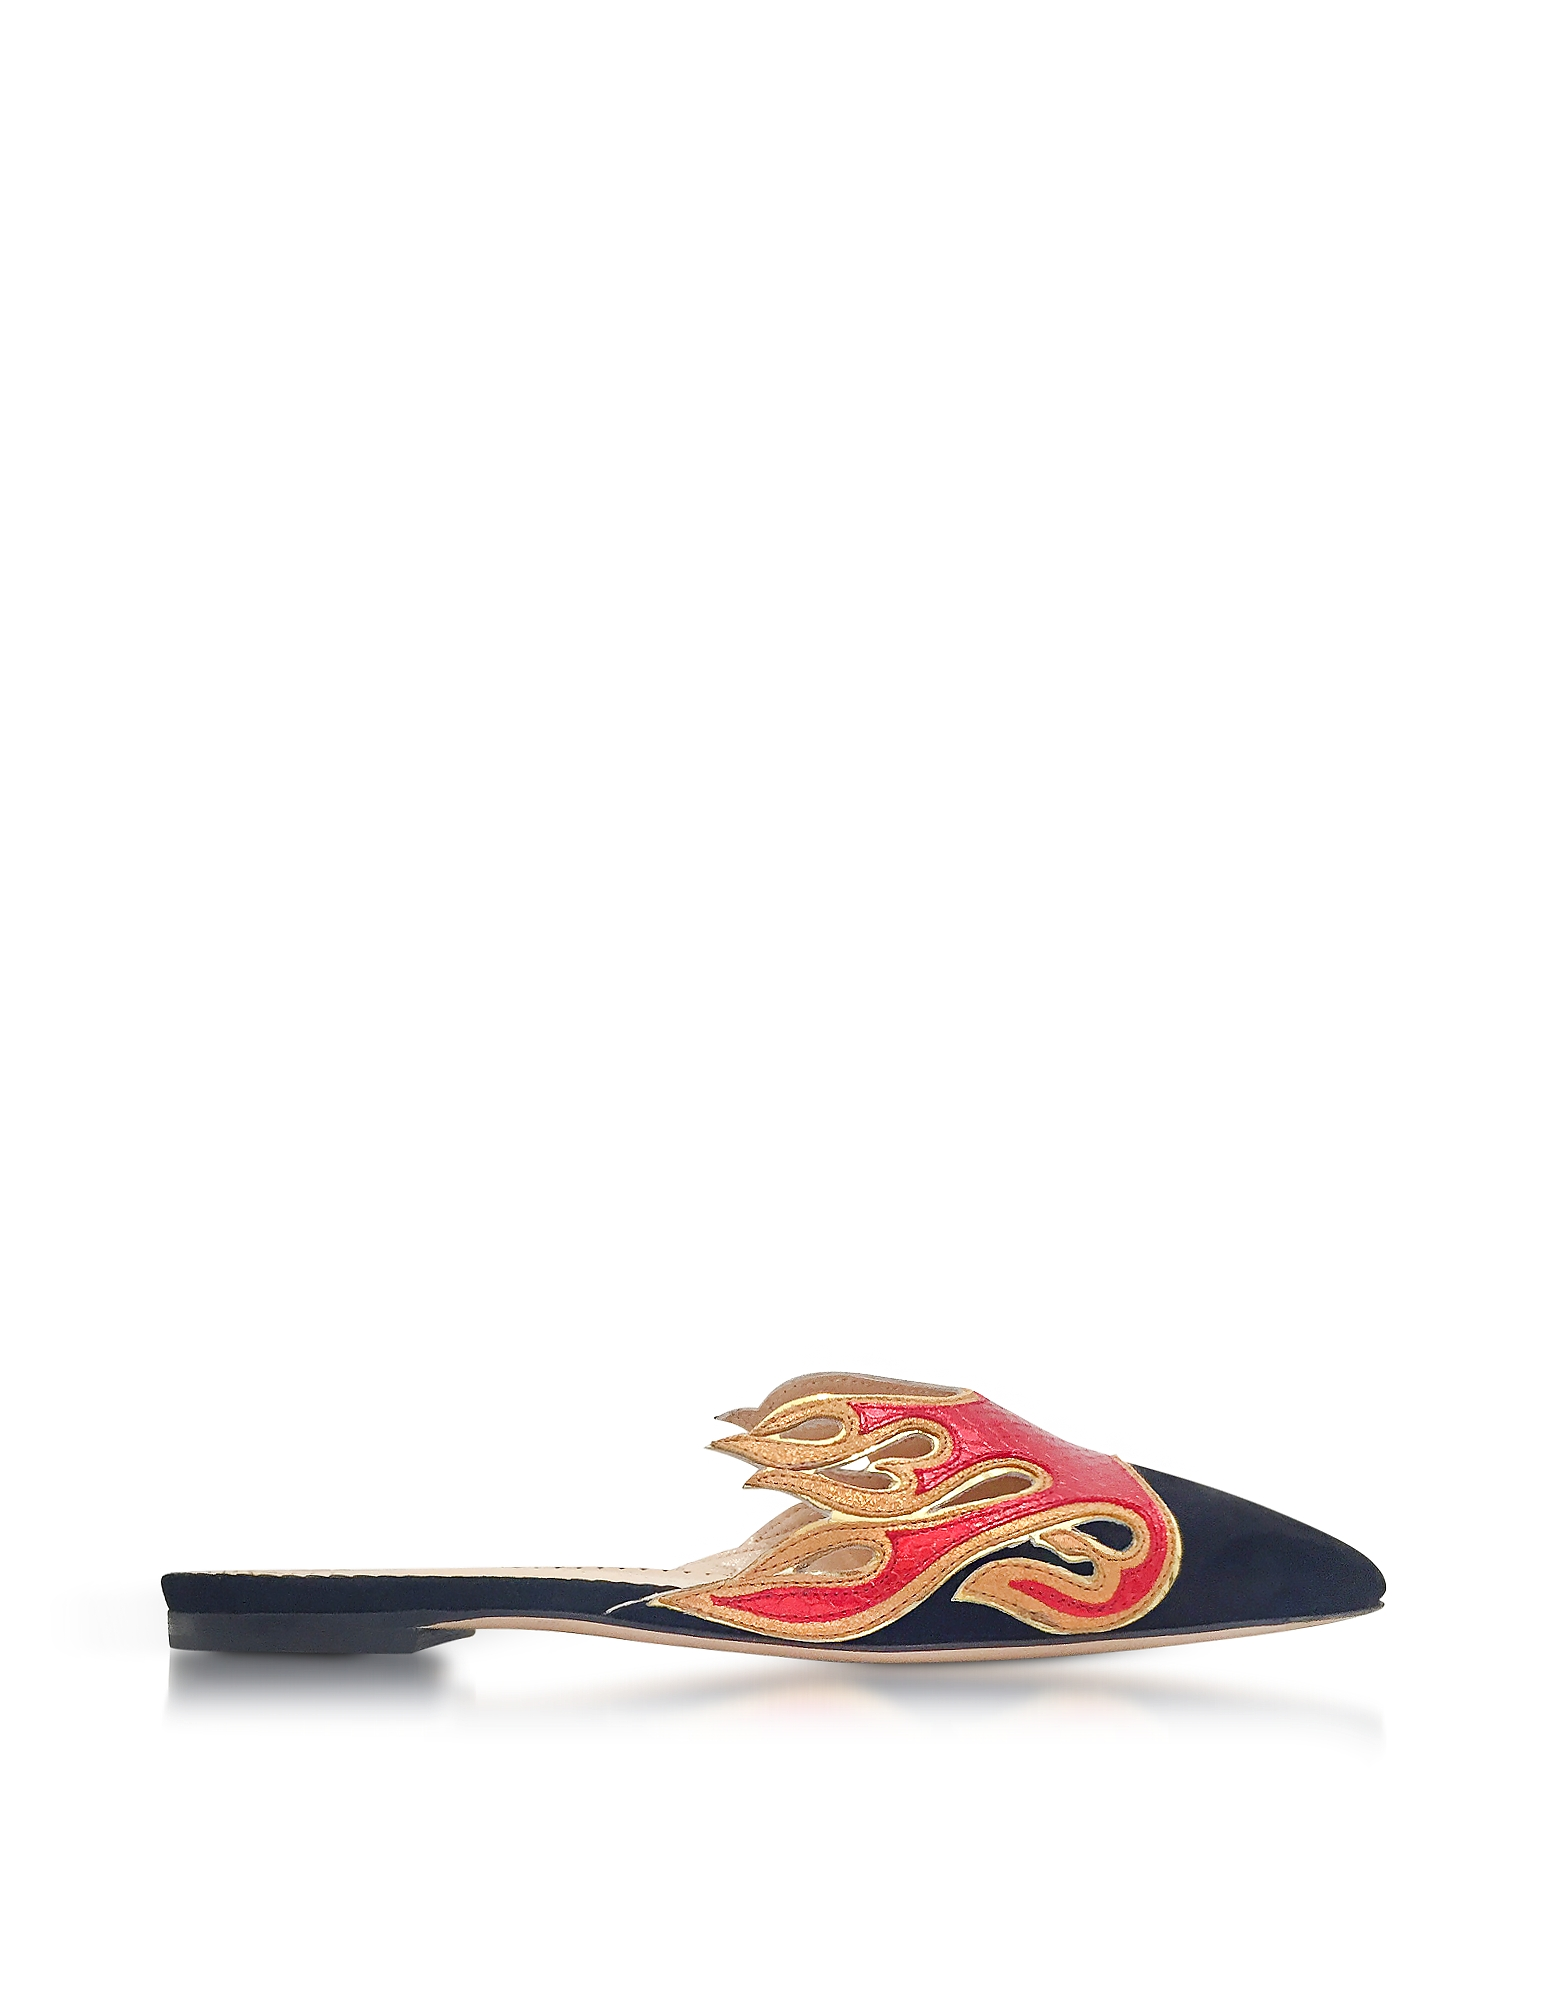 Charlotte Olympia Shoes, Black Suede and Red Snake-Printed Leather Flaming Slide Mules